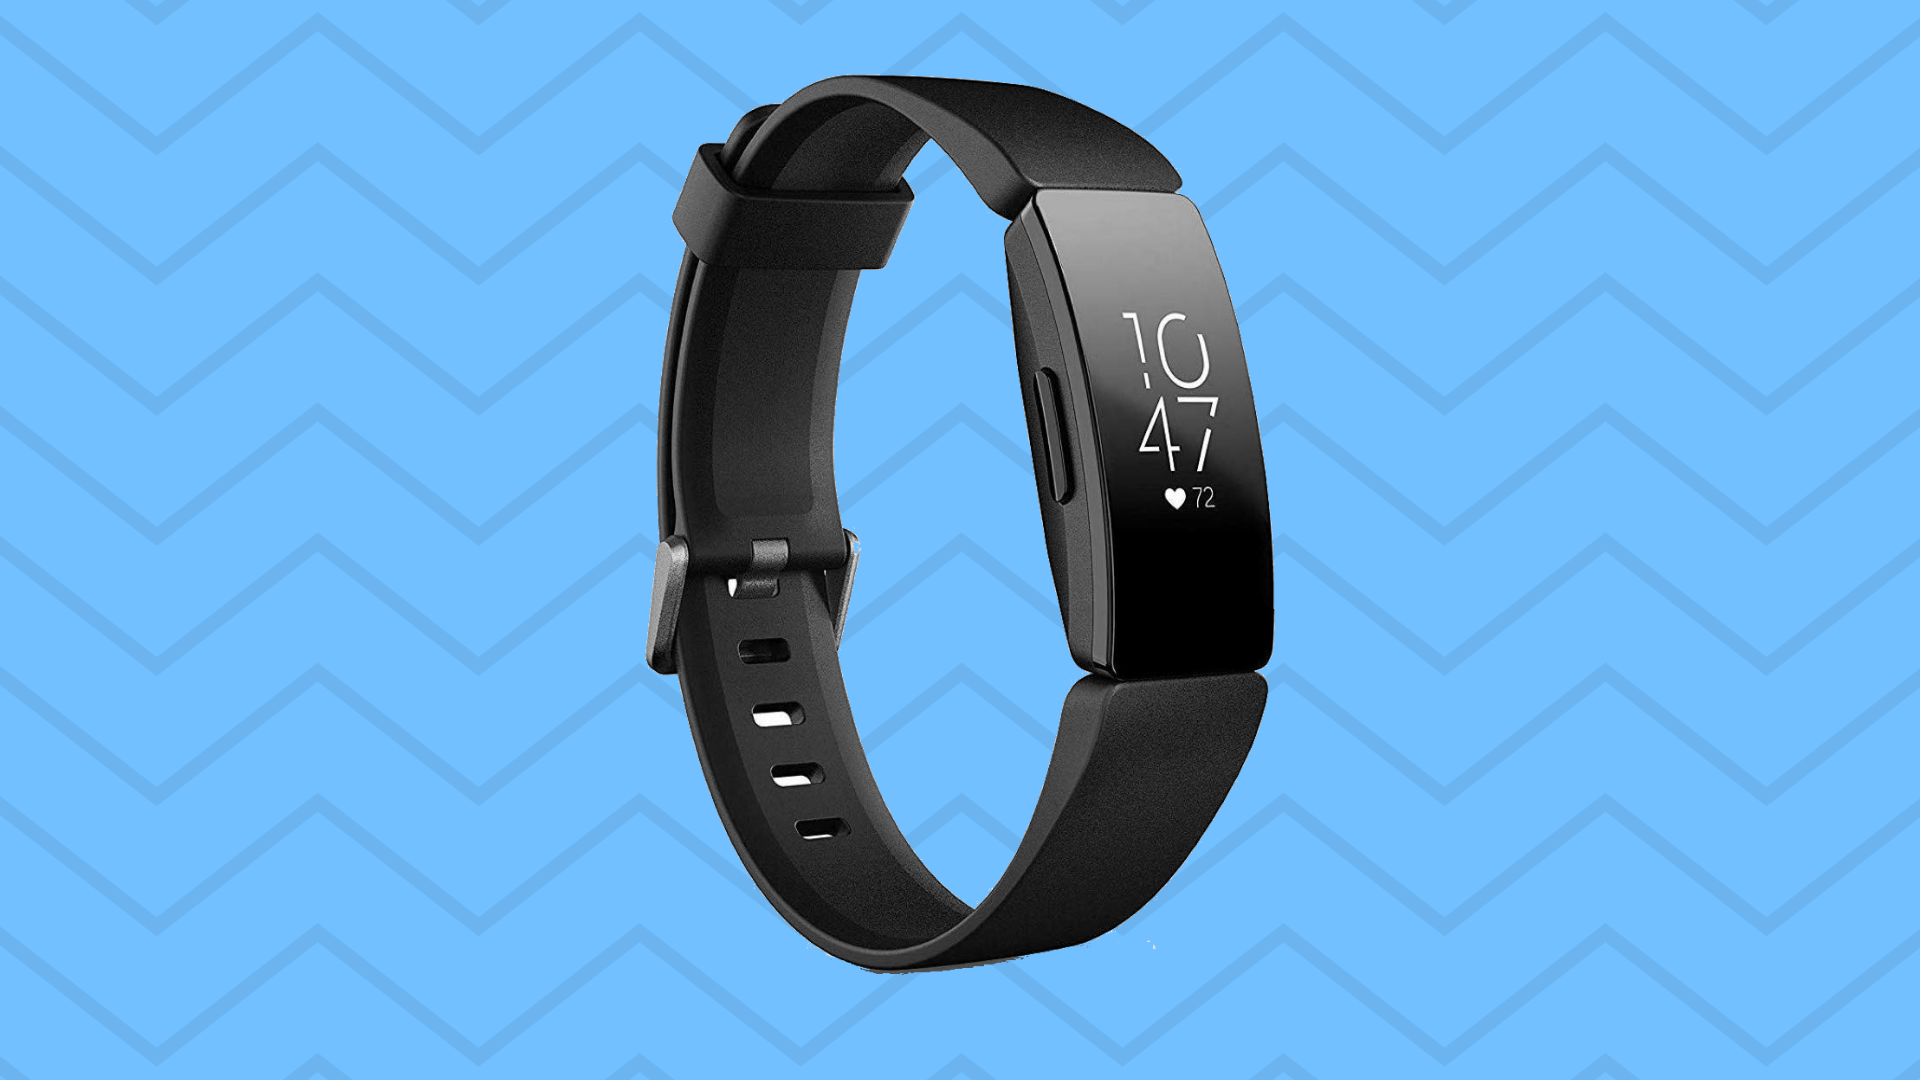 Over 7,000 shoppers swear by this sleek Fitbit to keep track of their fitness goals, plus it's $30 off today